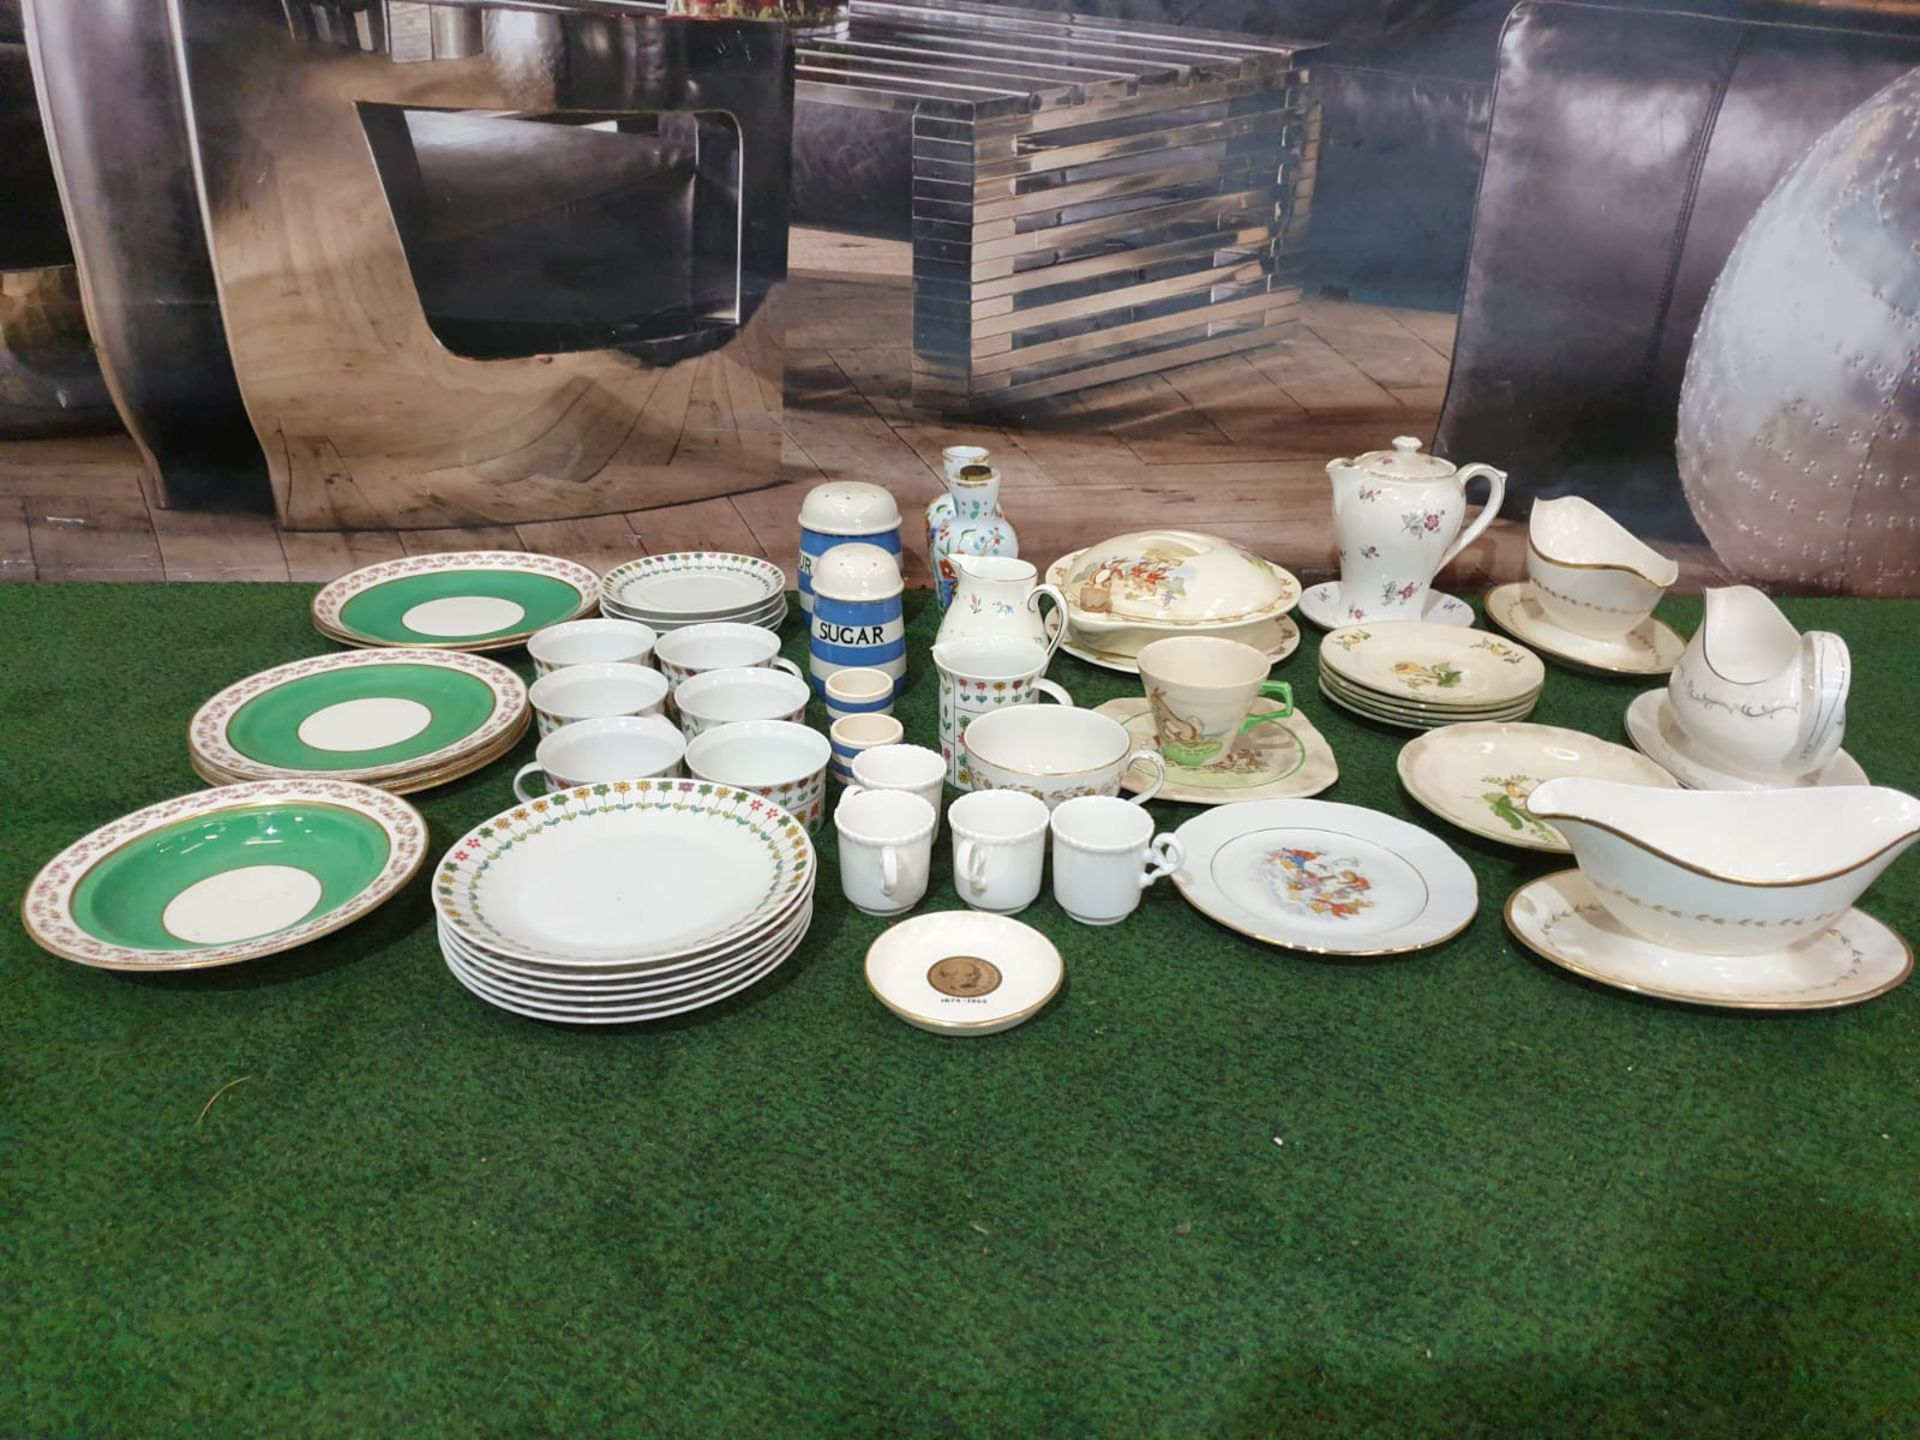 A Large quantity of tableware various patterns and manufacturers including Royal Doulton, Shelley, H - Image 2 of 15